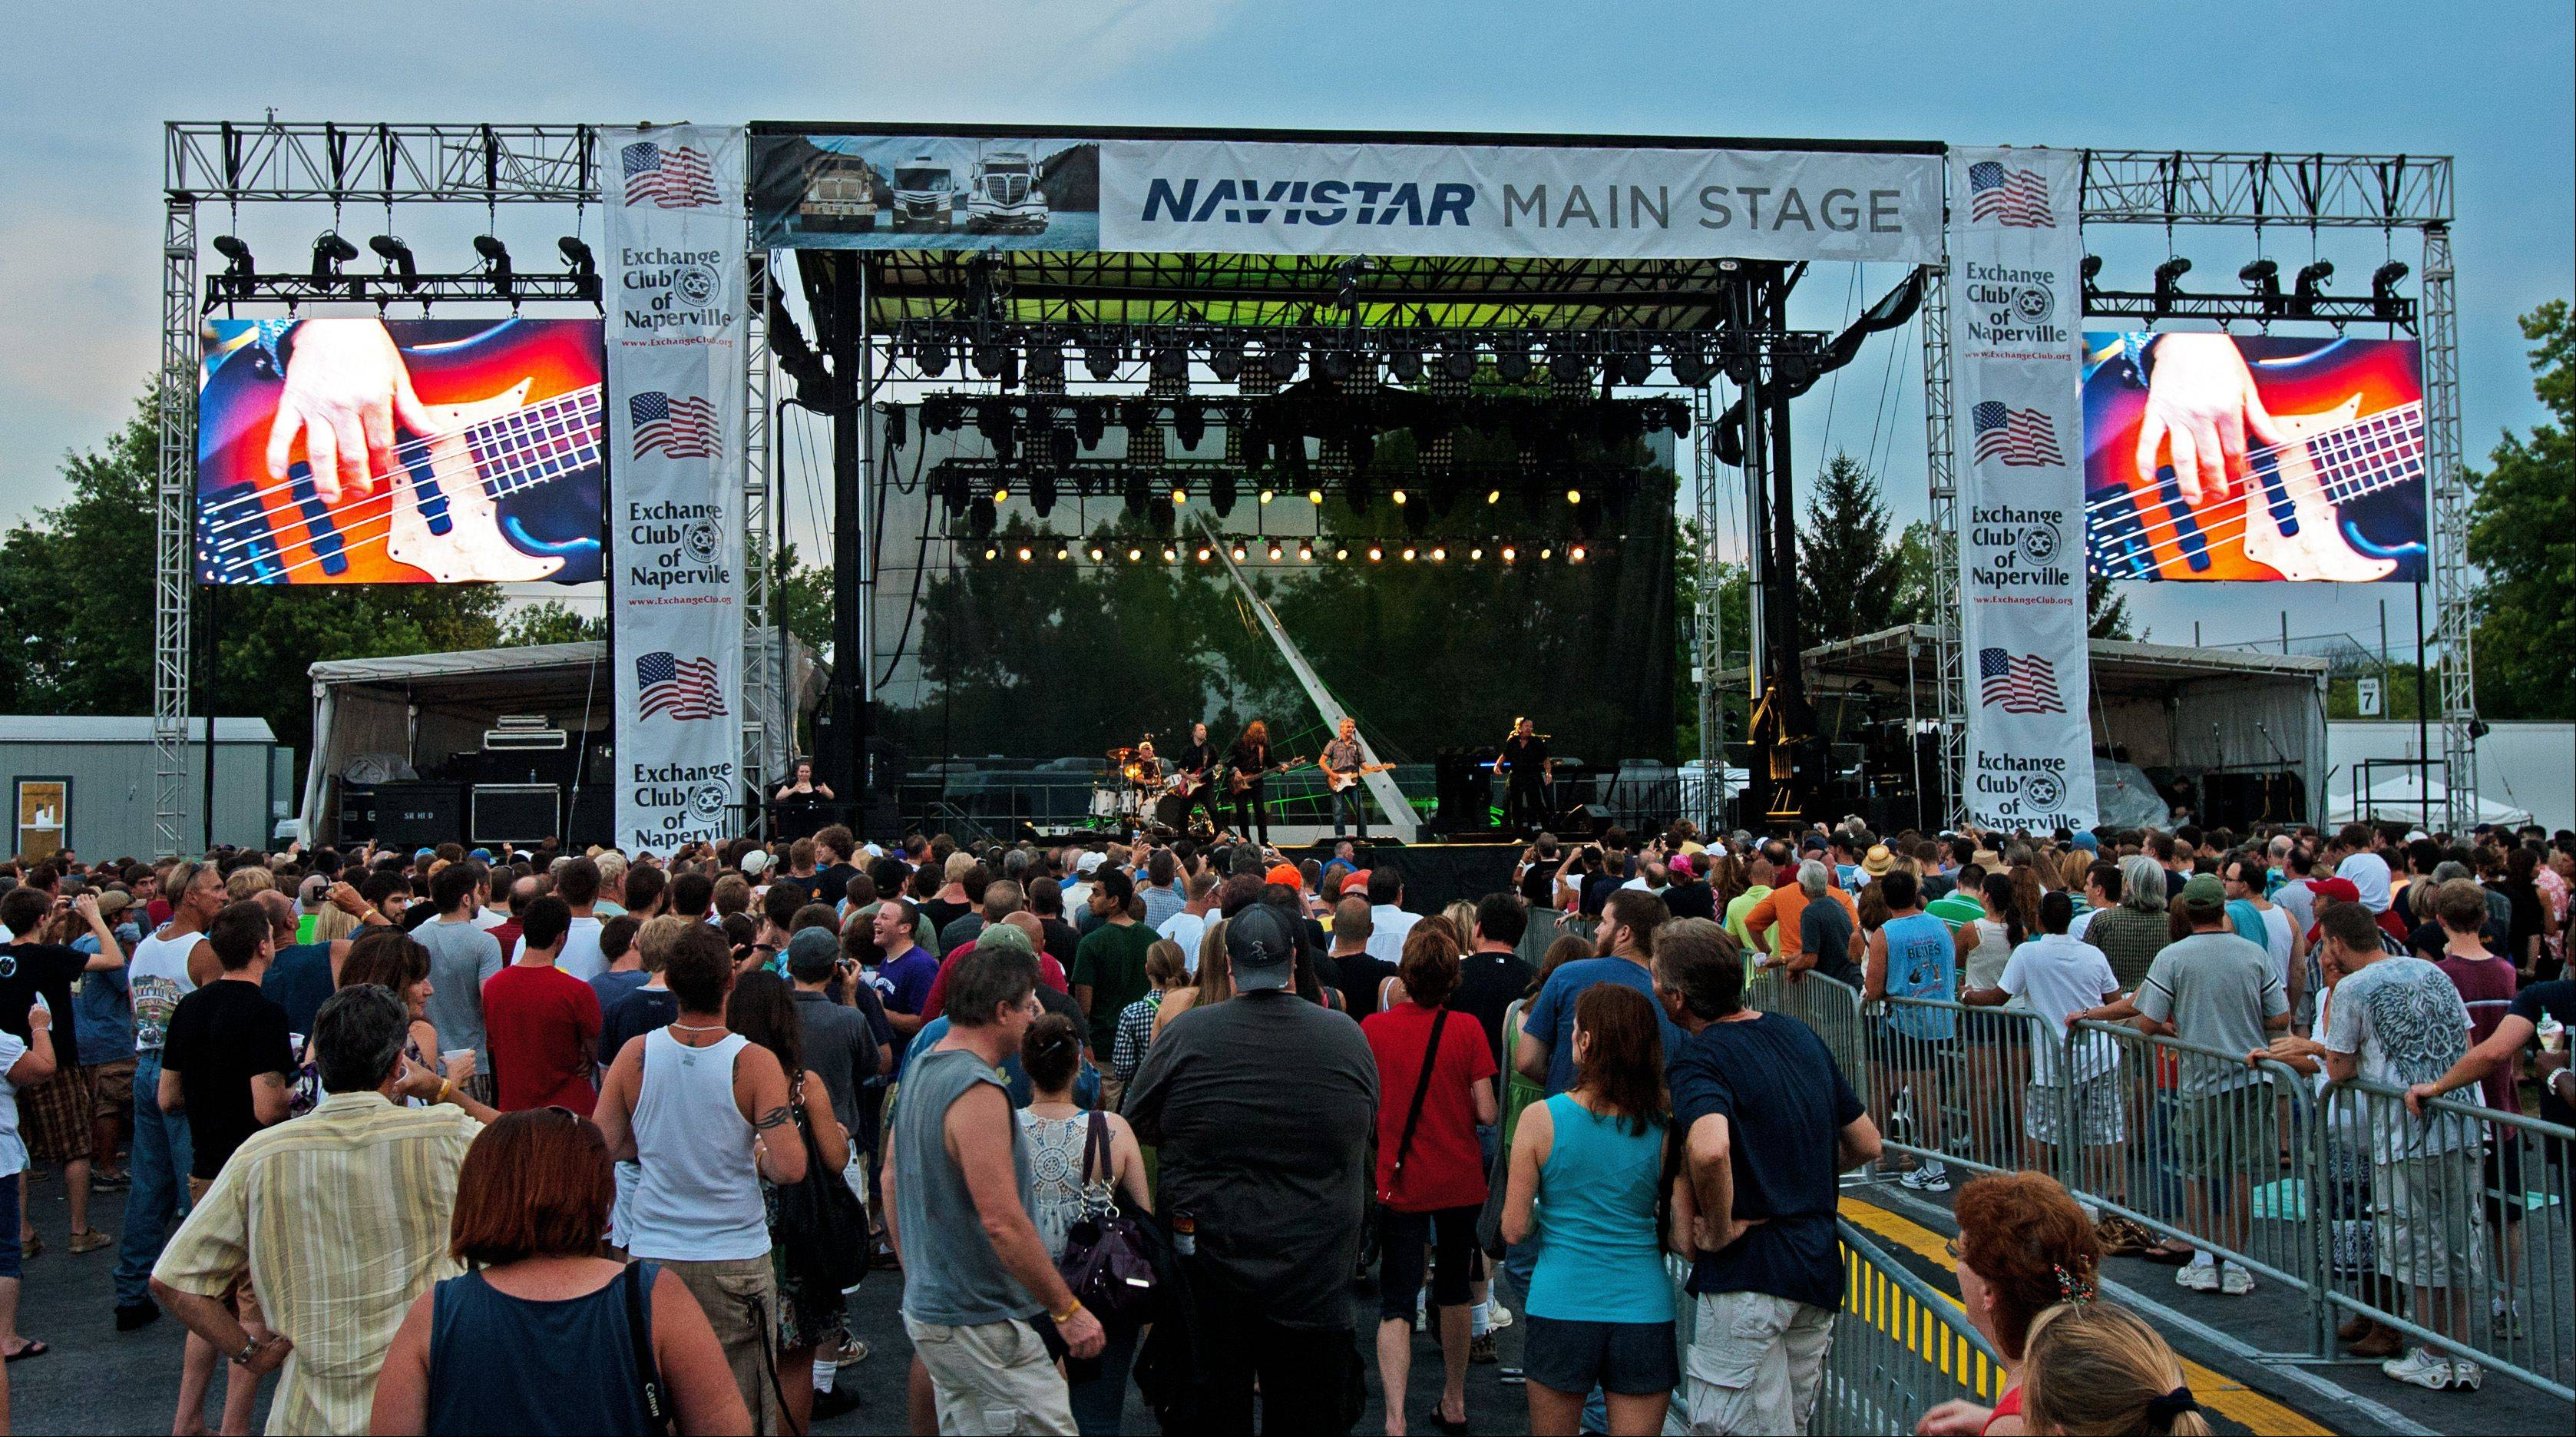 Thousands listen to the Steve Miller Band who headline the first day of Ribfest in Naperville.